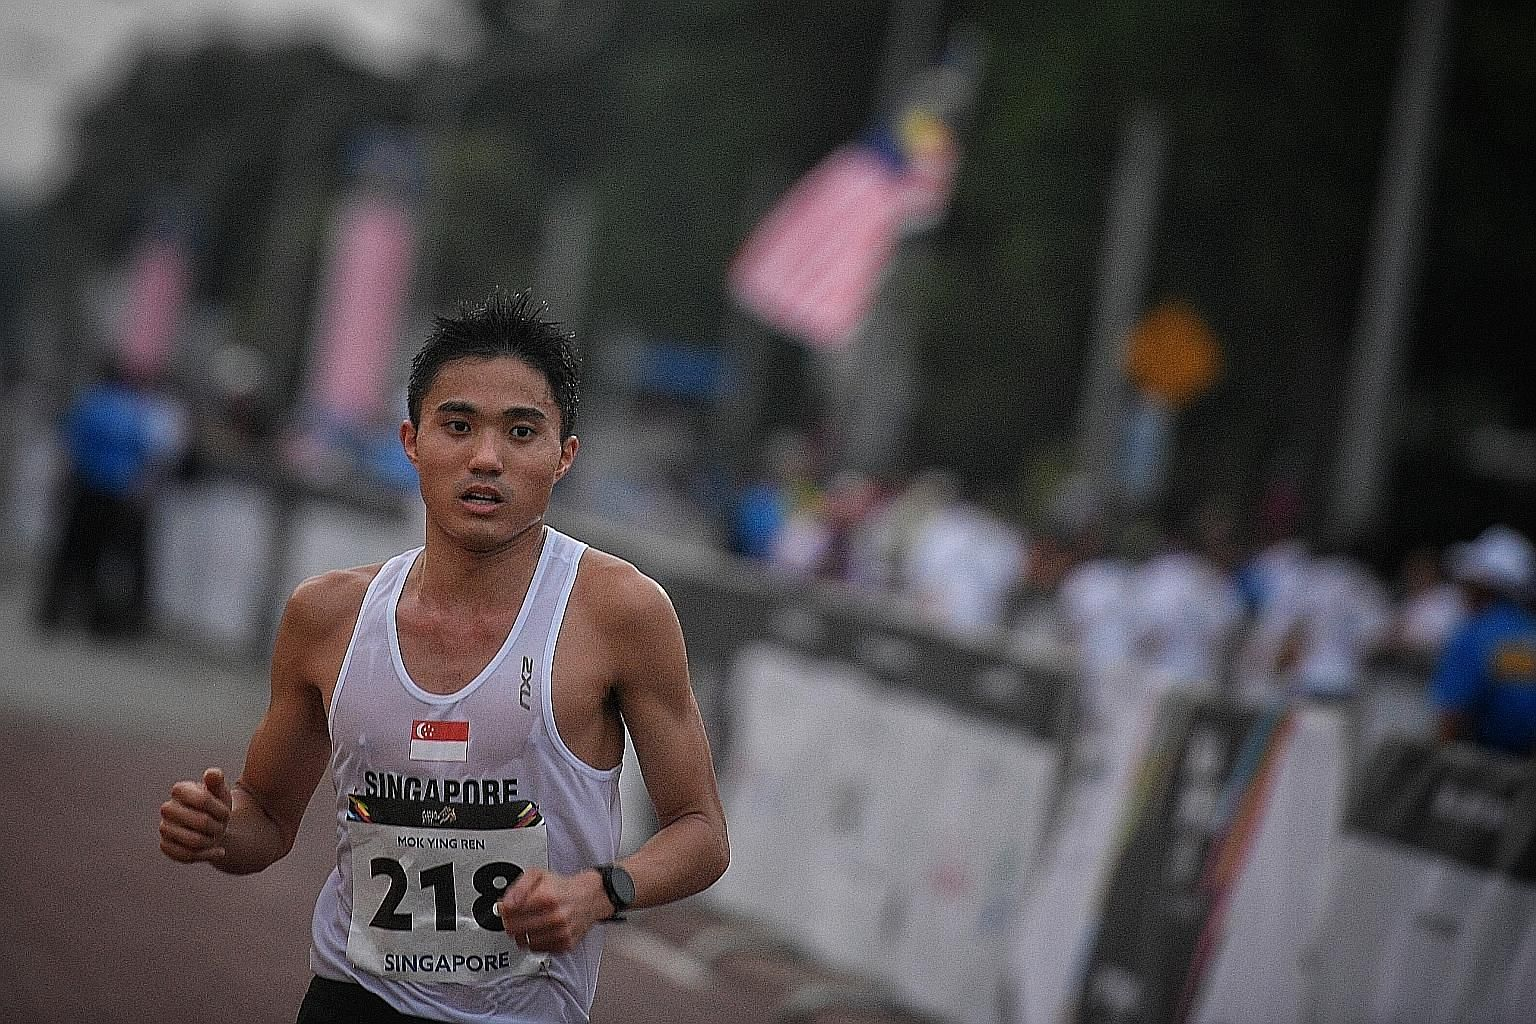 Singapore marathoner Mok Ying Ren is drenched in sweat during the marathon at the SEA Games last week. Sweating is an important process because it allows excess heat to escape from our bodies during exercise.